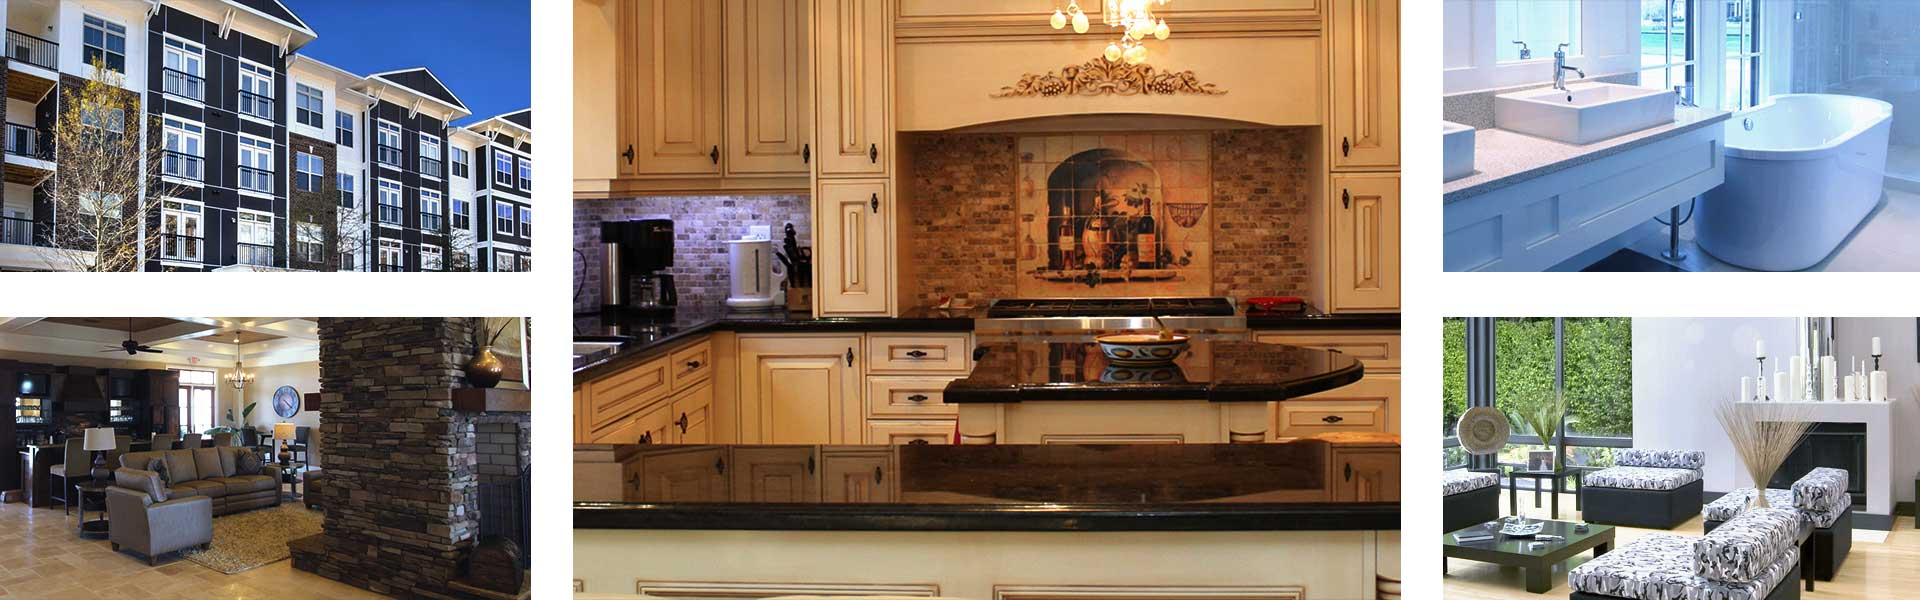 Delighful Basement Remodeling Contractors Throughout Design Ideas